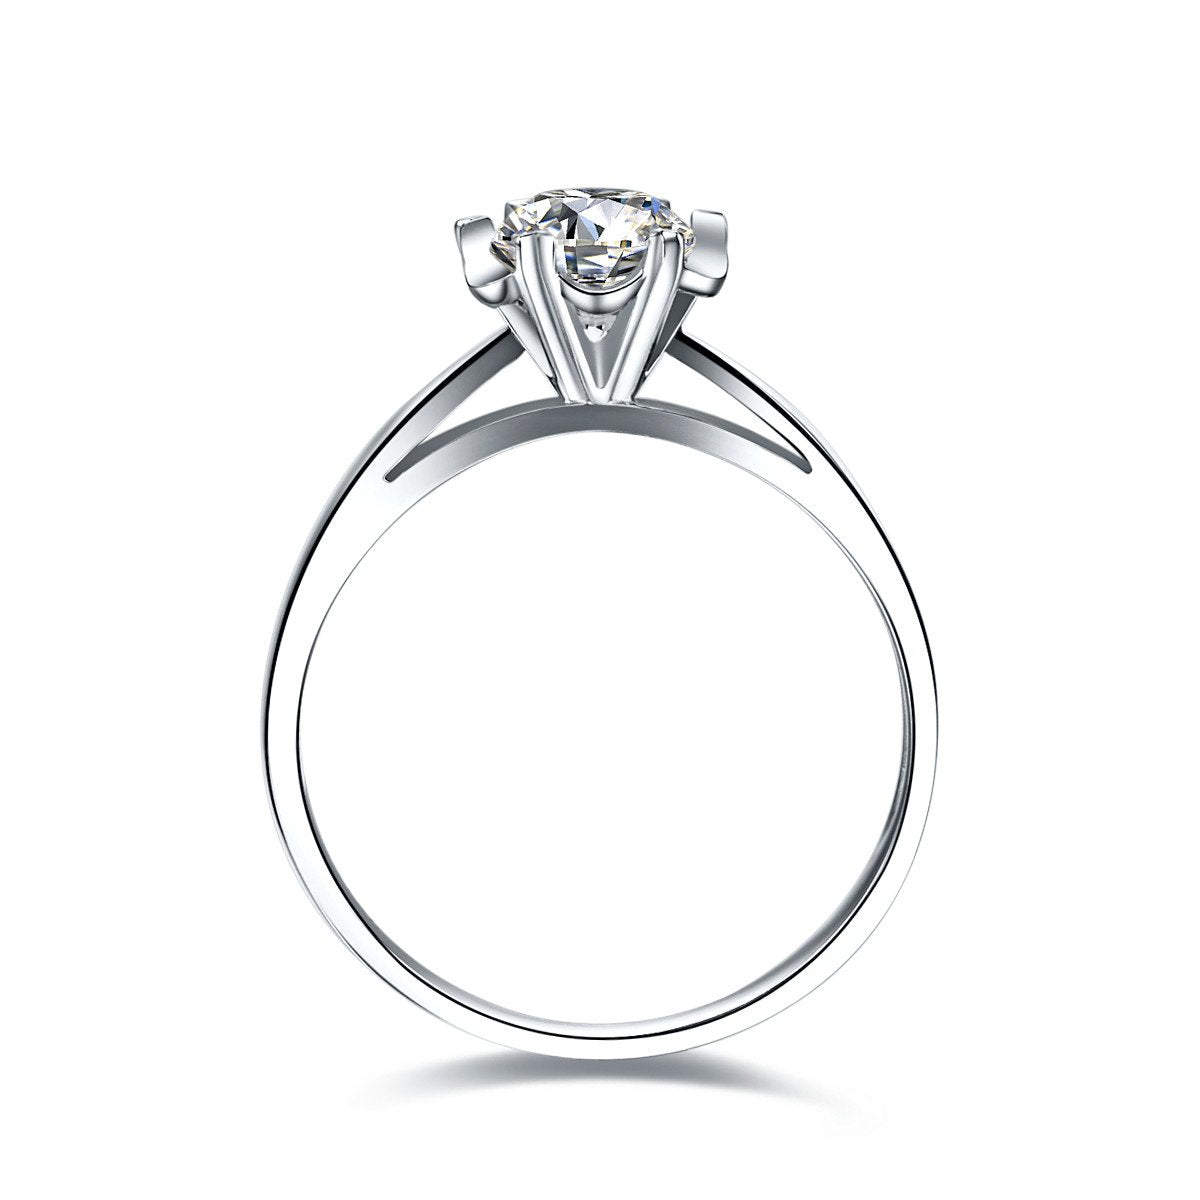 - 0.50ct Solitaire 18K White Gold GIA Diamond Ring for Women Handmade Wedding Band Engagement Natural GIA Diamond Jewelry -   jetcube